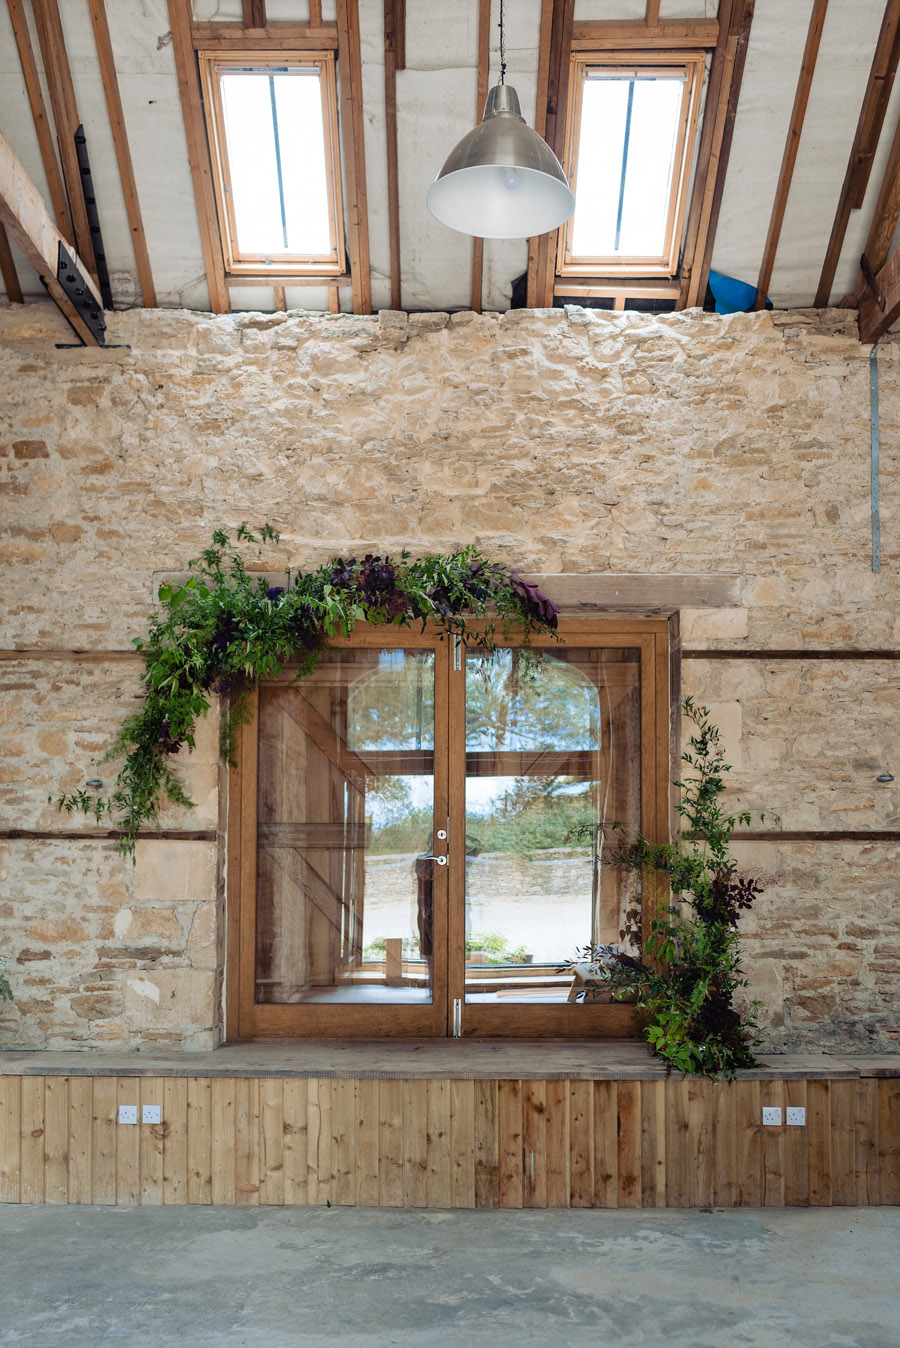 The Old Barn, Kelston - behind the scenes wedding flower styling - photo by Martin Pemberton (17)